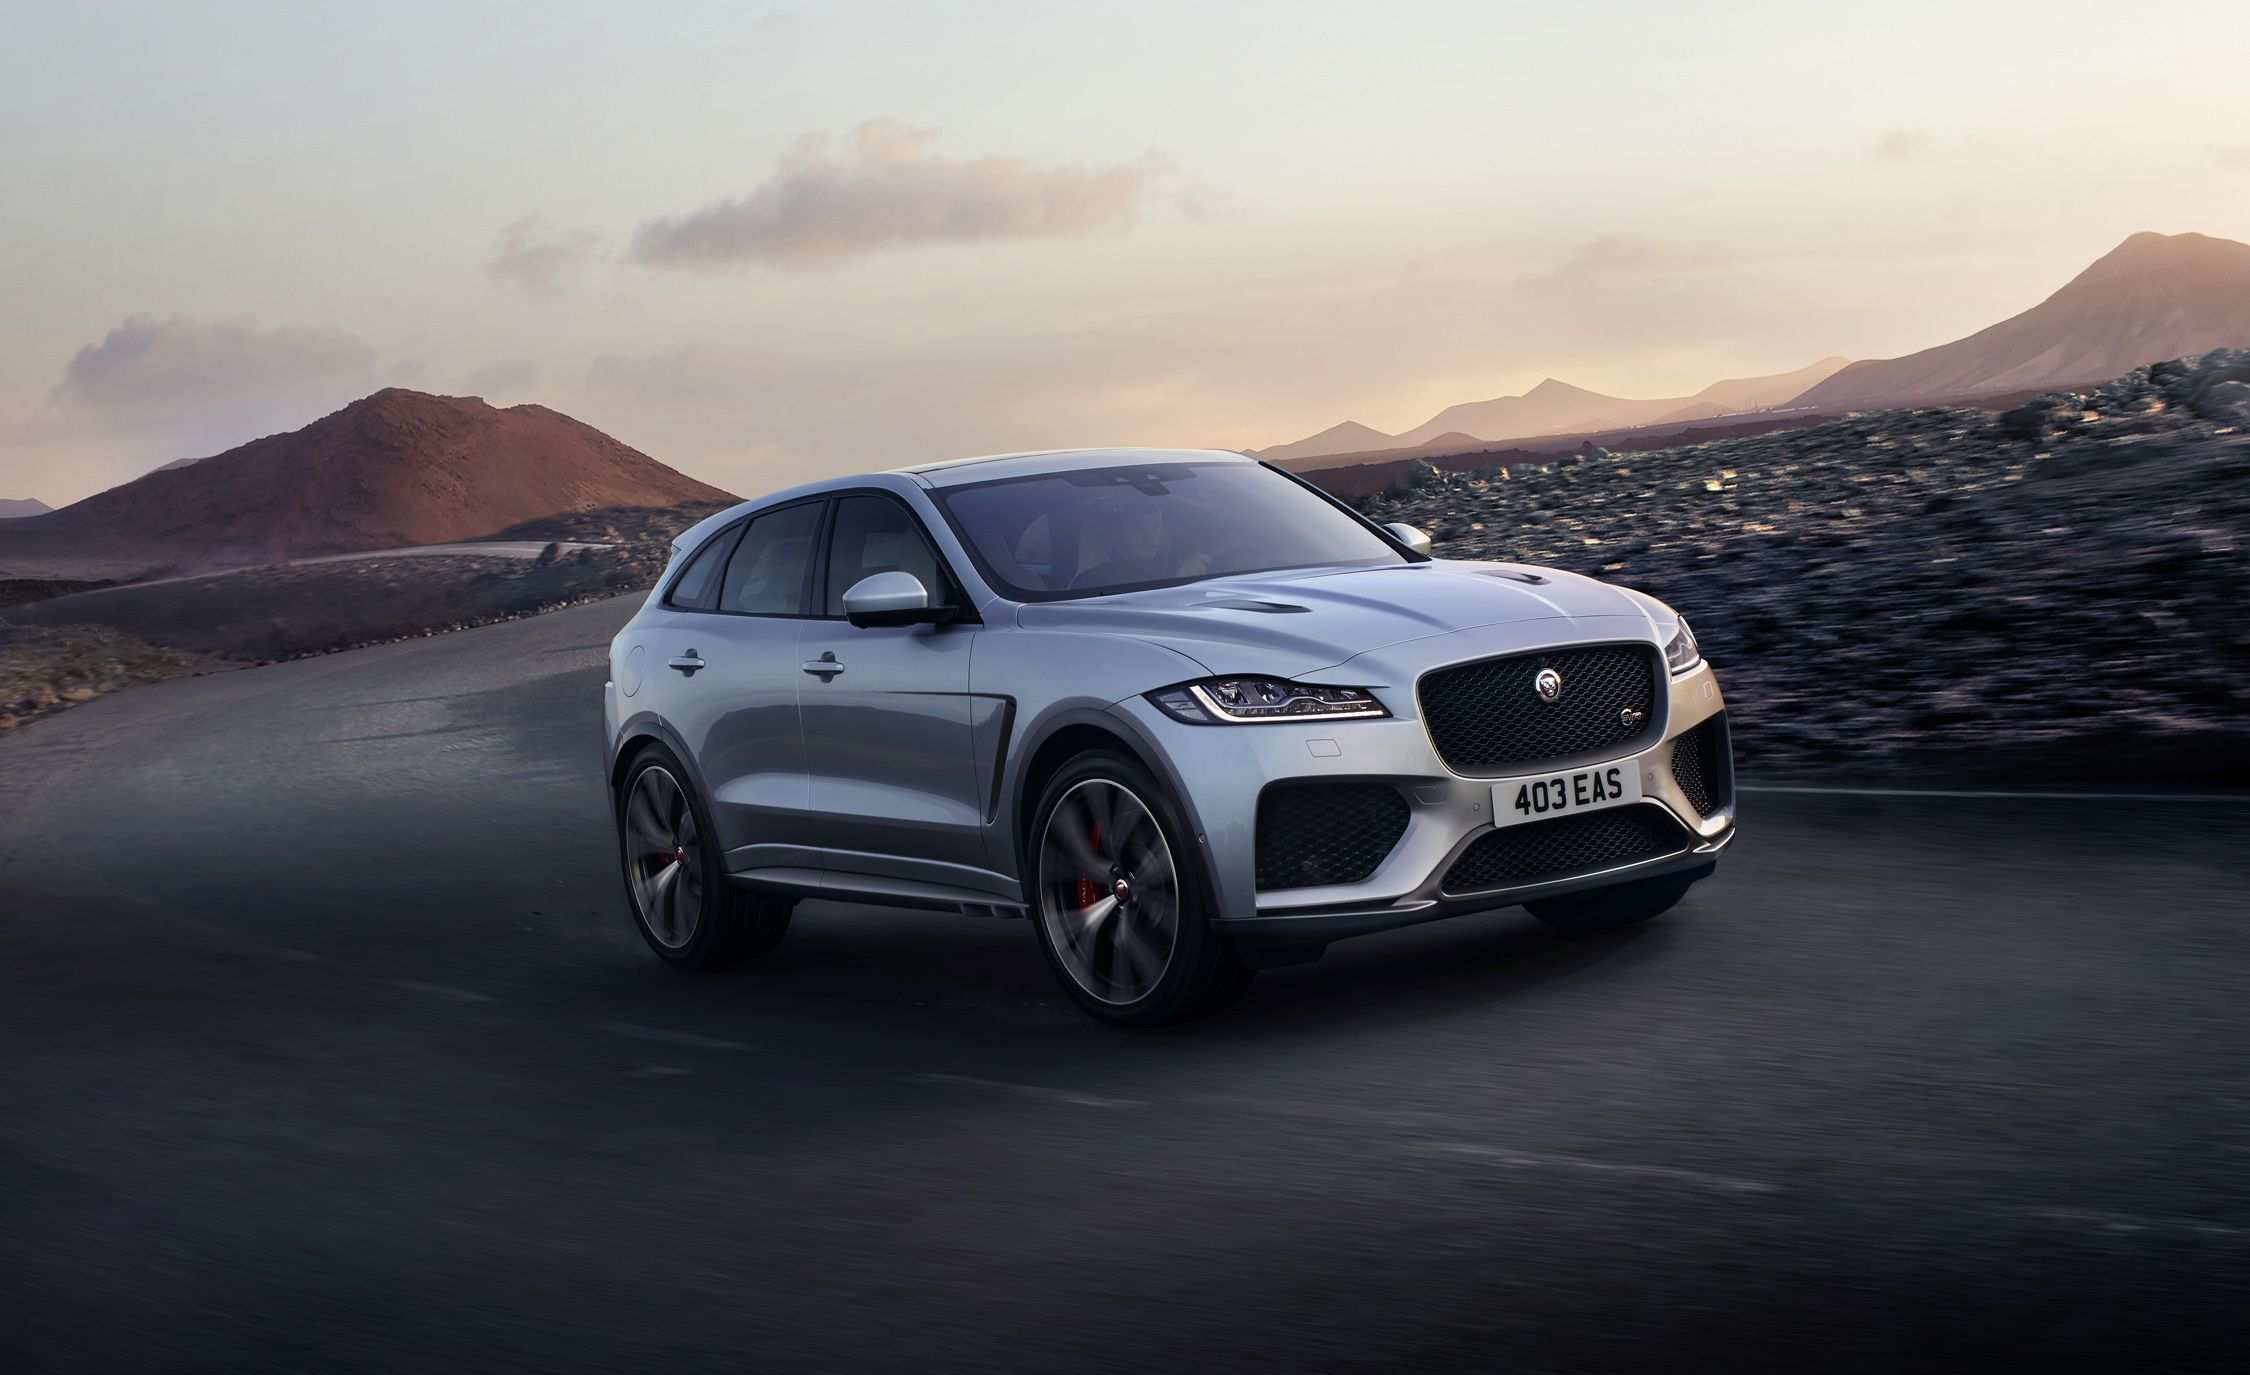 80 New Jaguar Svr 2019 Concept And Review